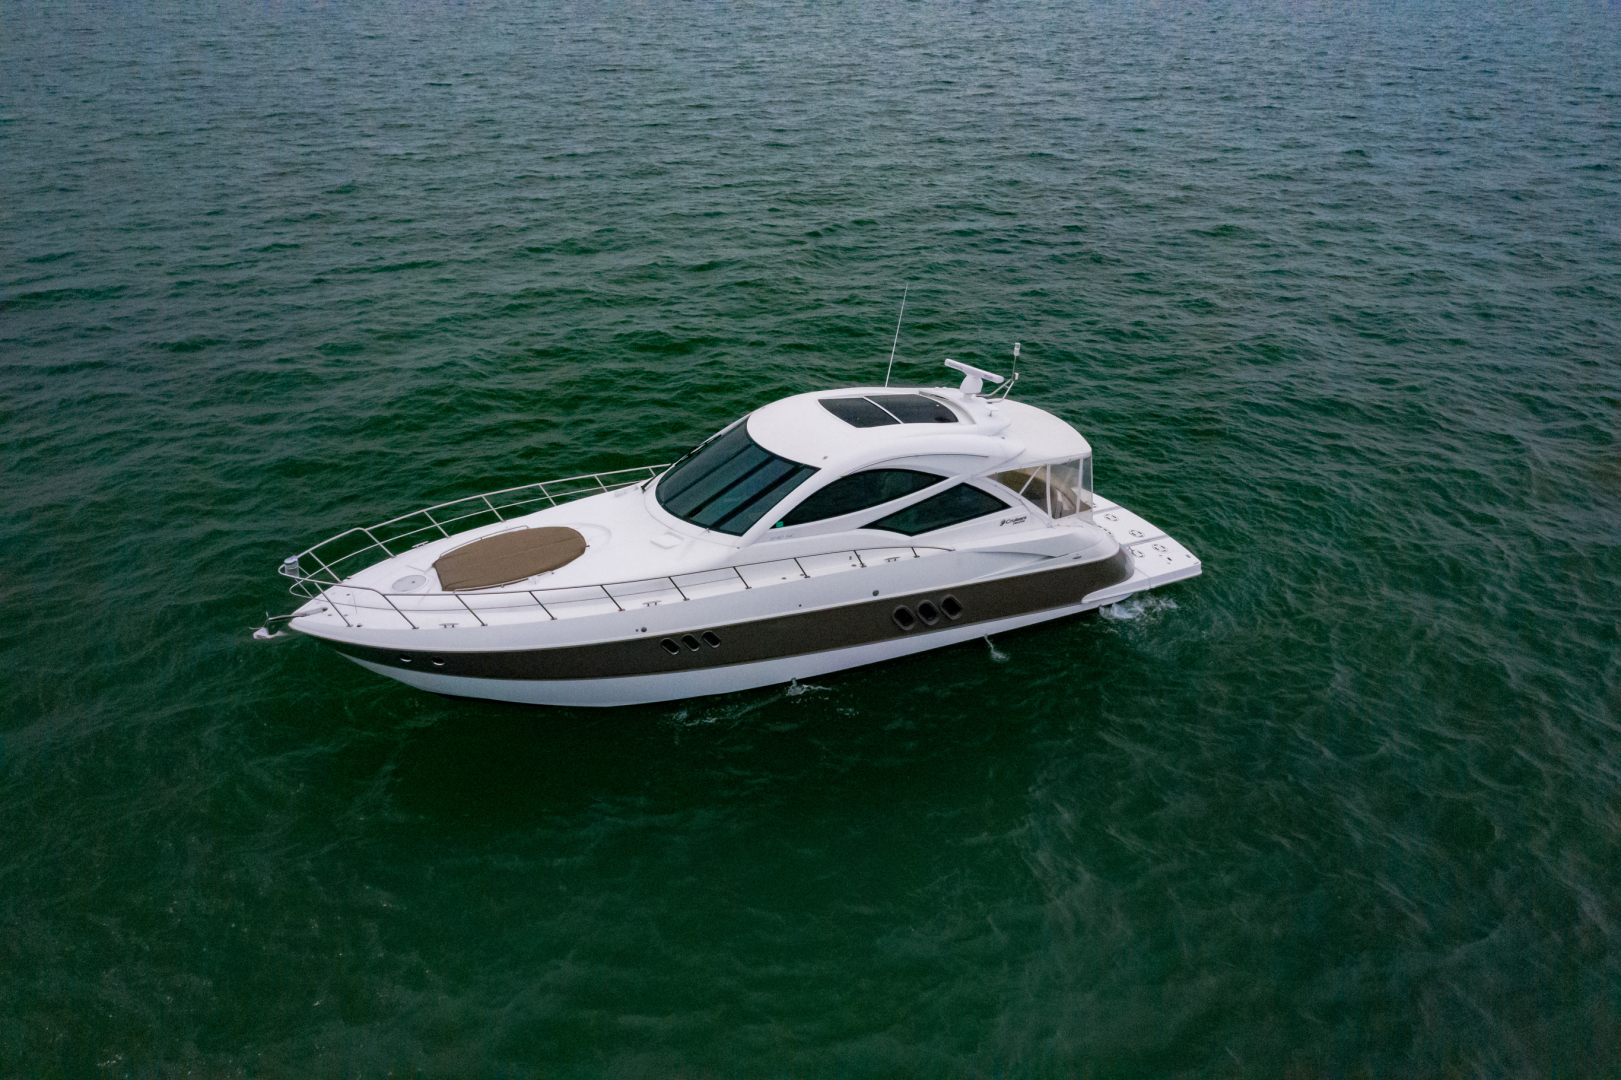 Cruisers-540 Coupe 2014-Galati Yacht Sales Trade Destin-Florida-United States-2014 Cruisers 540 Coupe-1417878 | Thumbnail